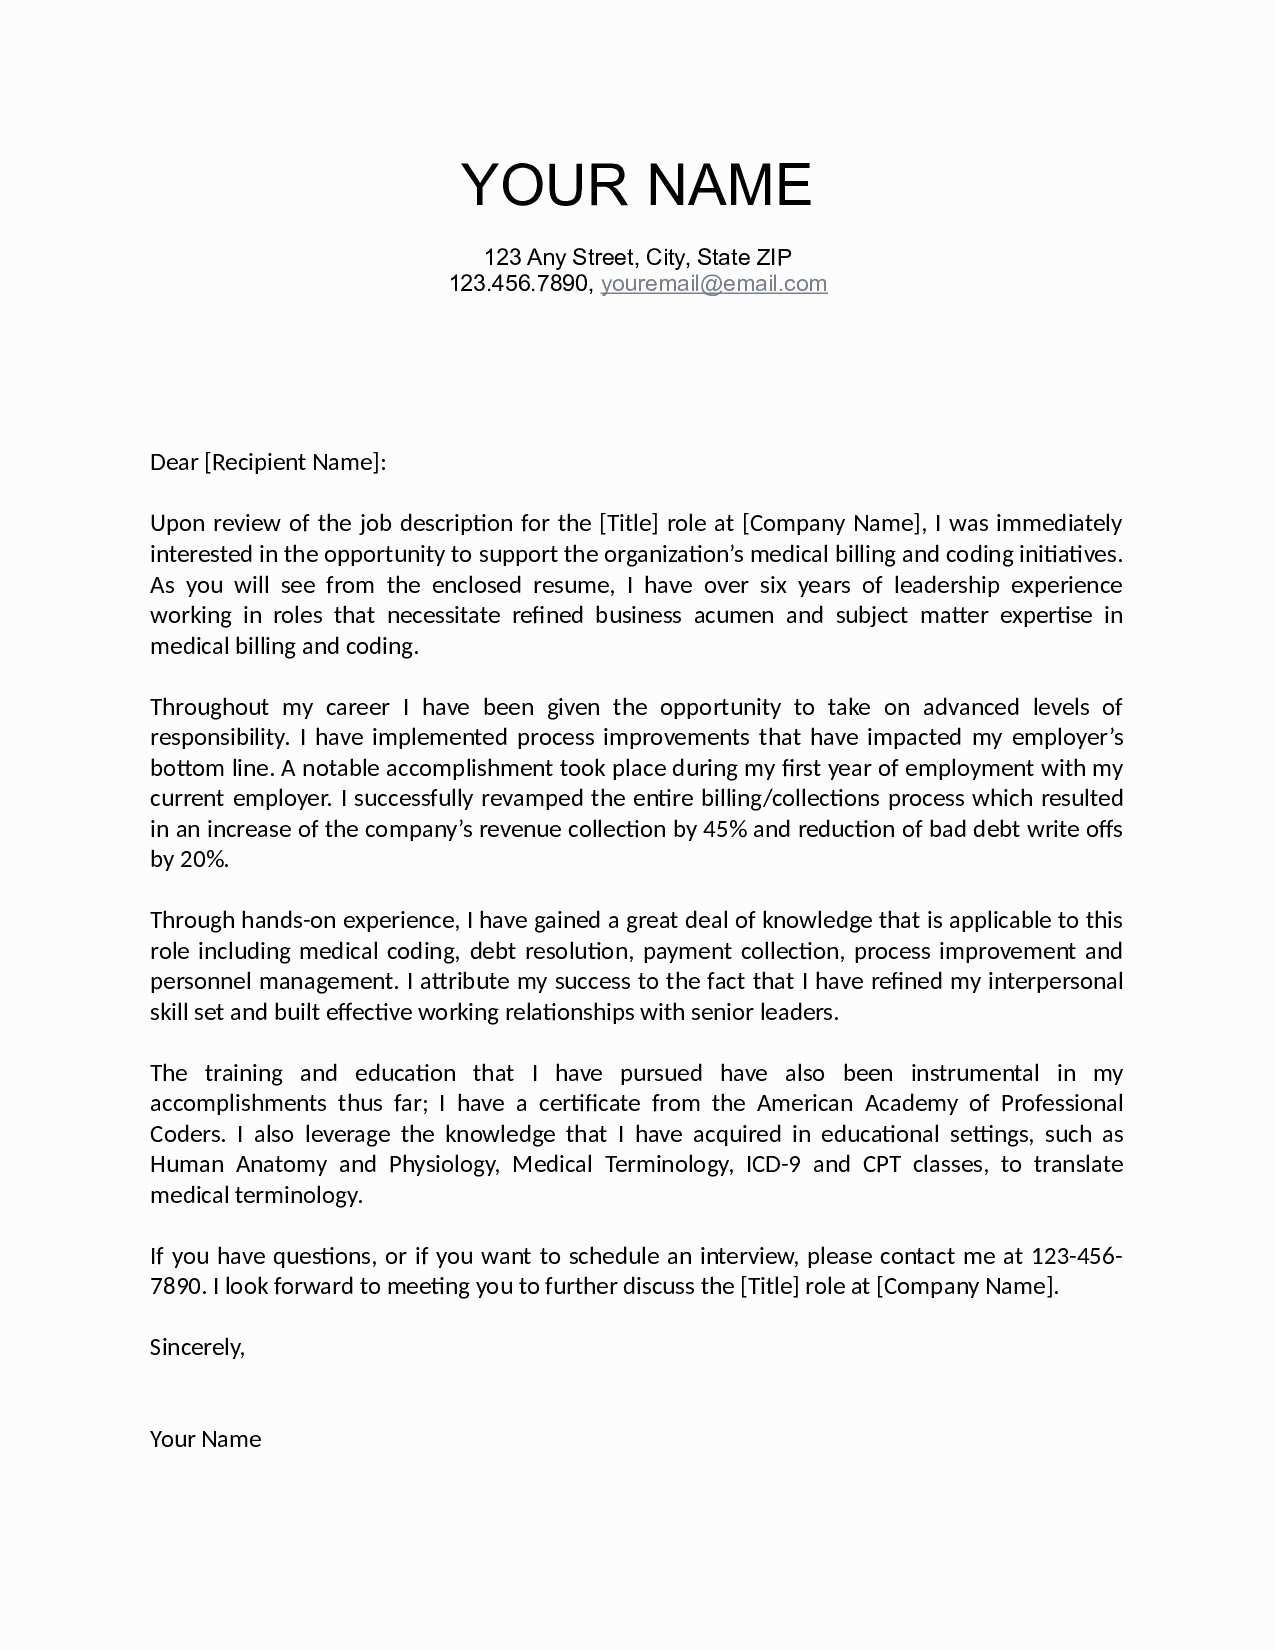 Cover Letter Template 2018 - Cover Letter for Oil and Gas Job Save Lovely Job Fer Letter Template